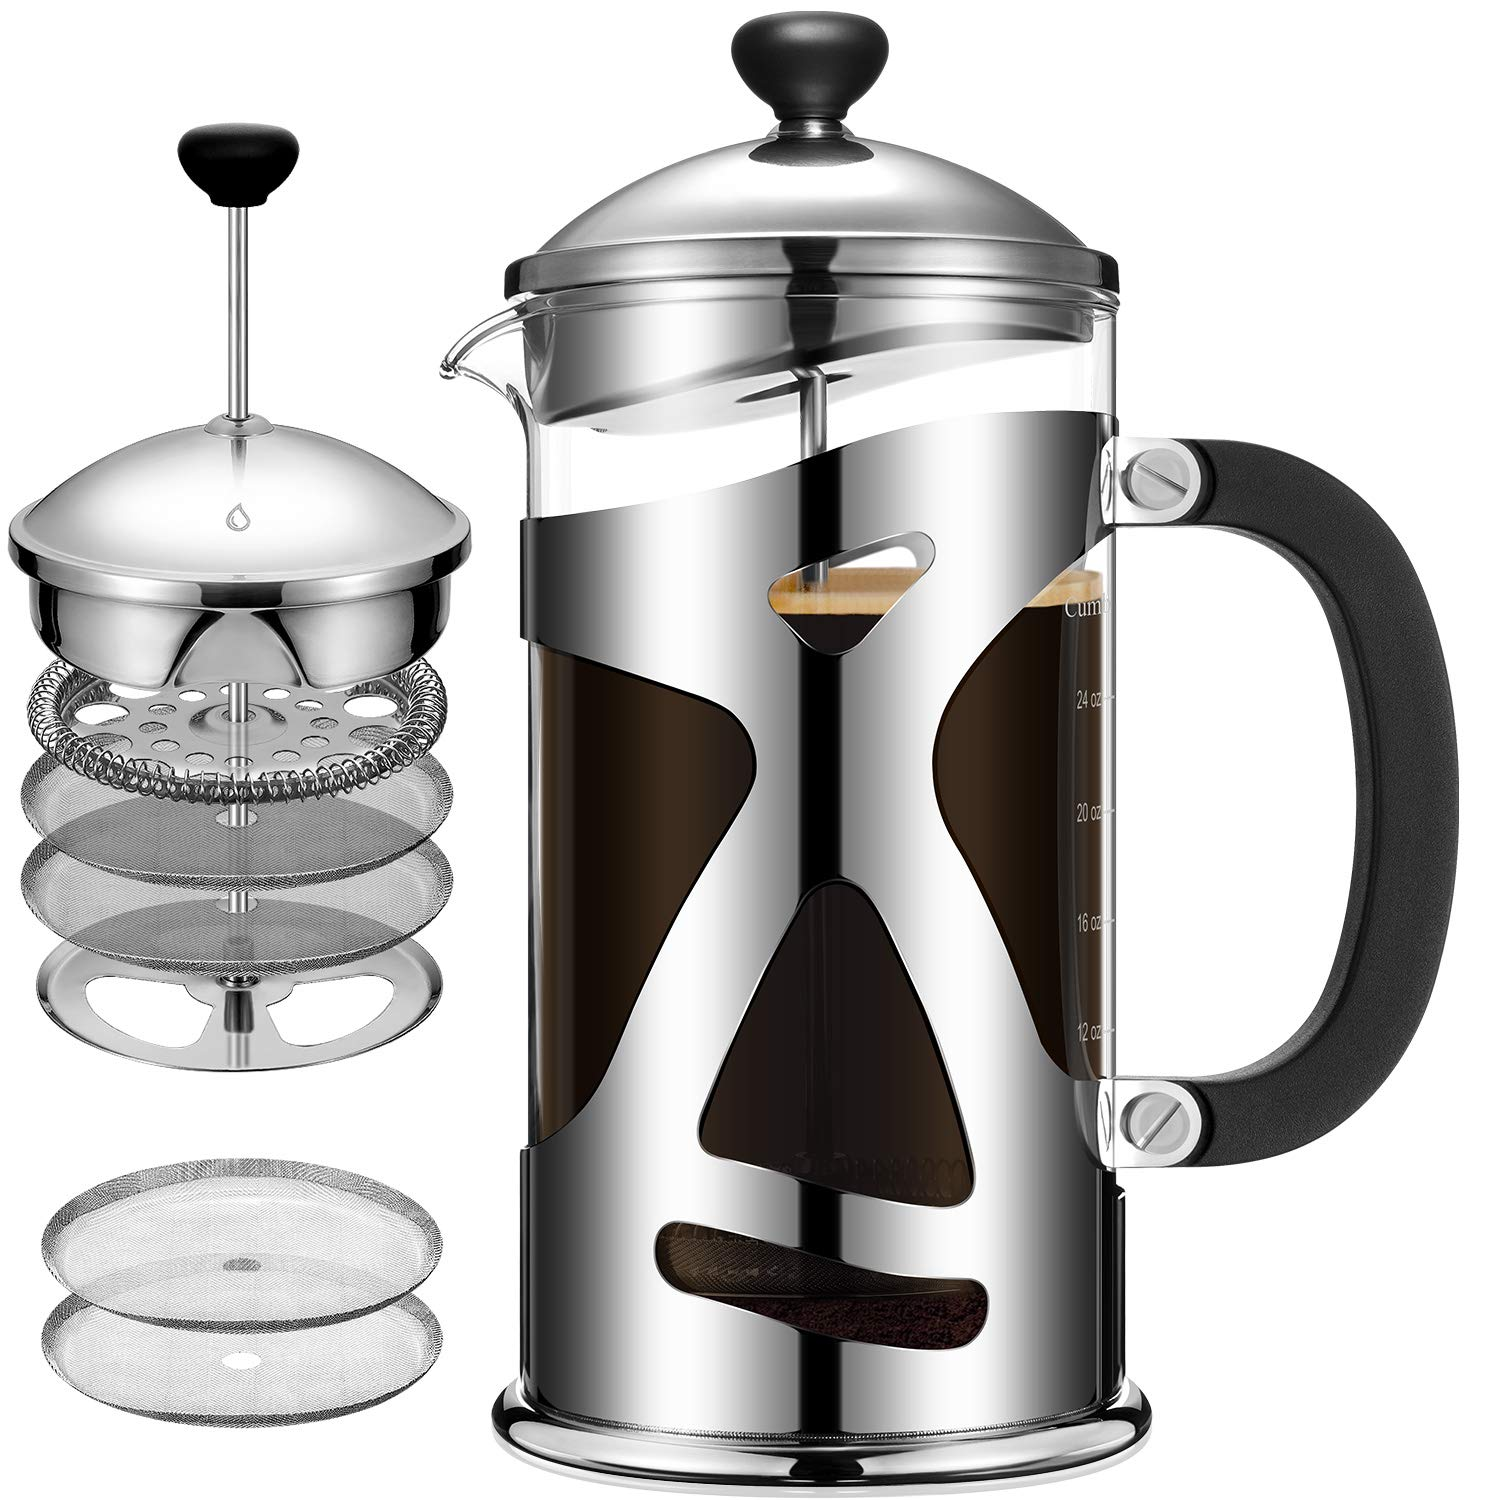 Cumbor French Press Coffee Maker 34oz , Durable Stainless Steel Coffee Press with 4 Filter Screens, Easy Clean, Heat Resistant Borosilicate Thicker Glass – 100 BPA Free